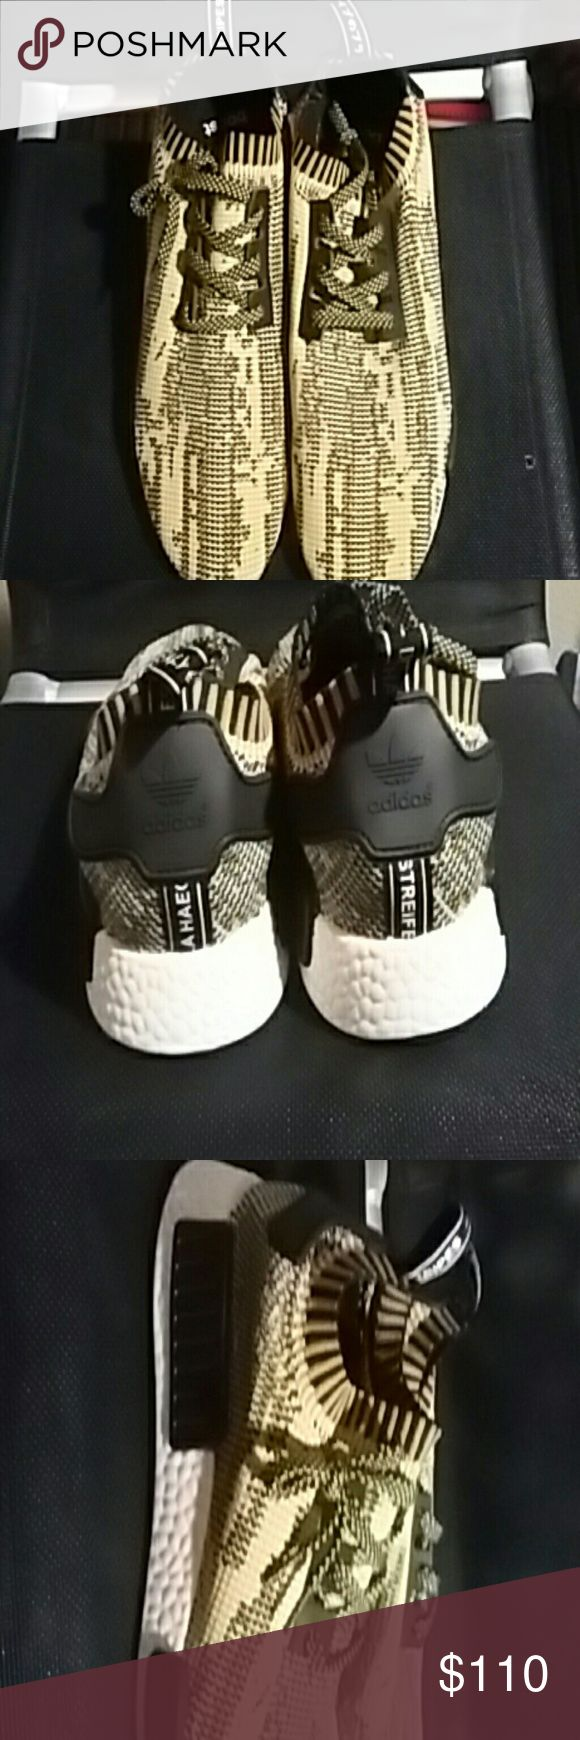 Adidas nmd pk Brand new Never worn Men's size 10 Does not come with original box adidas Shoes Athletic Shoes